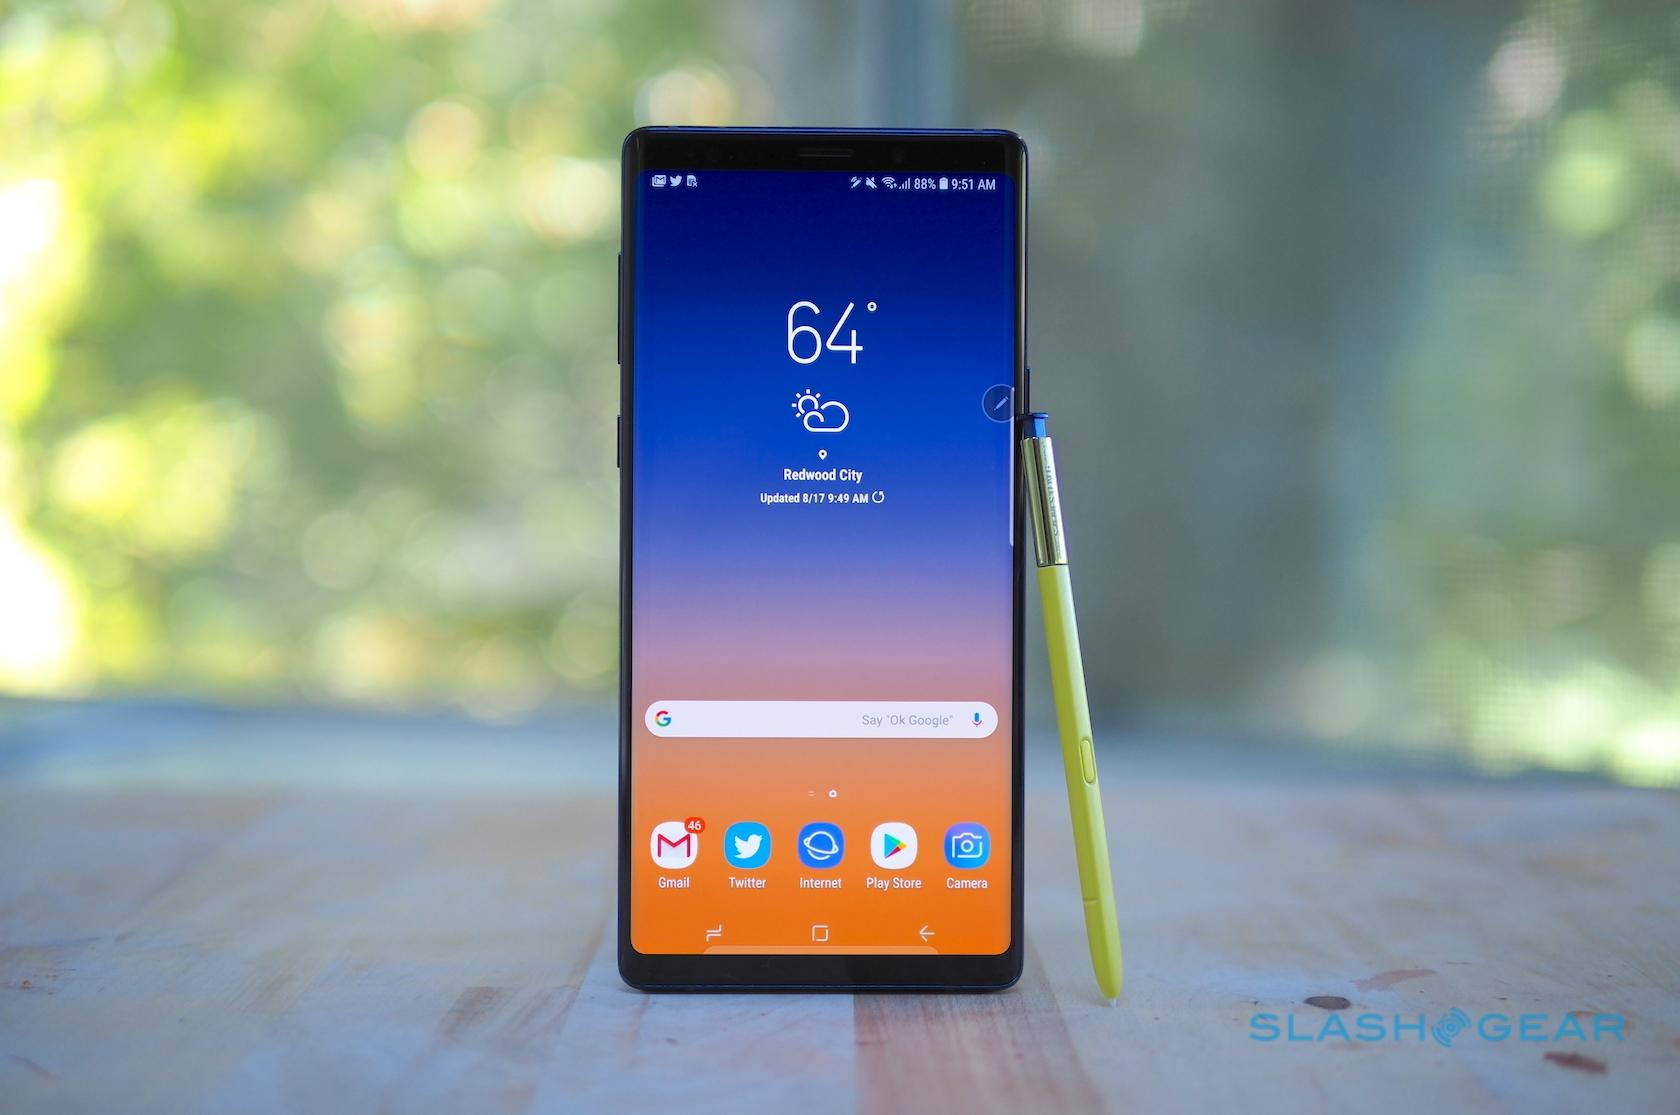 Samsung Galaxy Note 9 Review: Epic phone, epic price - SlashGear